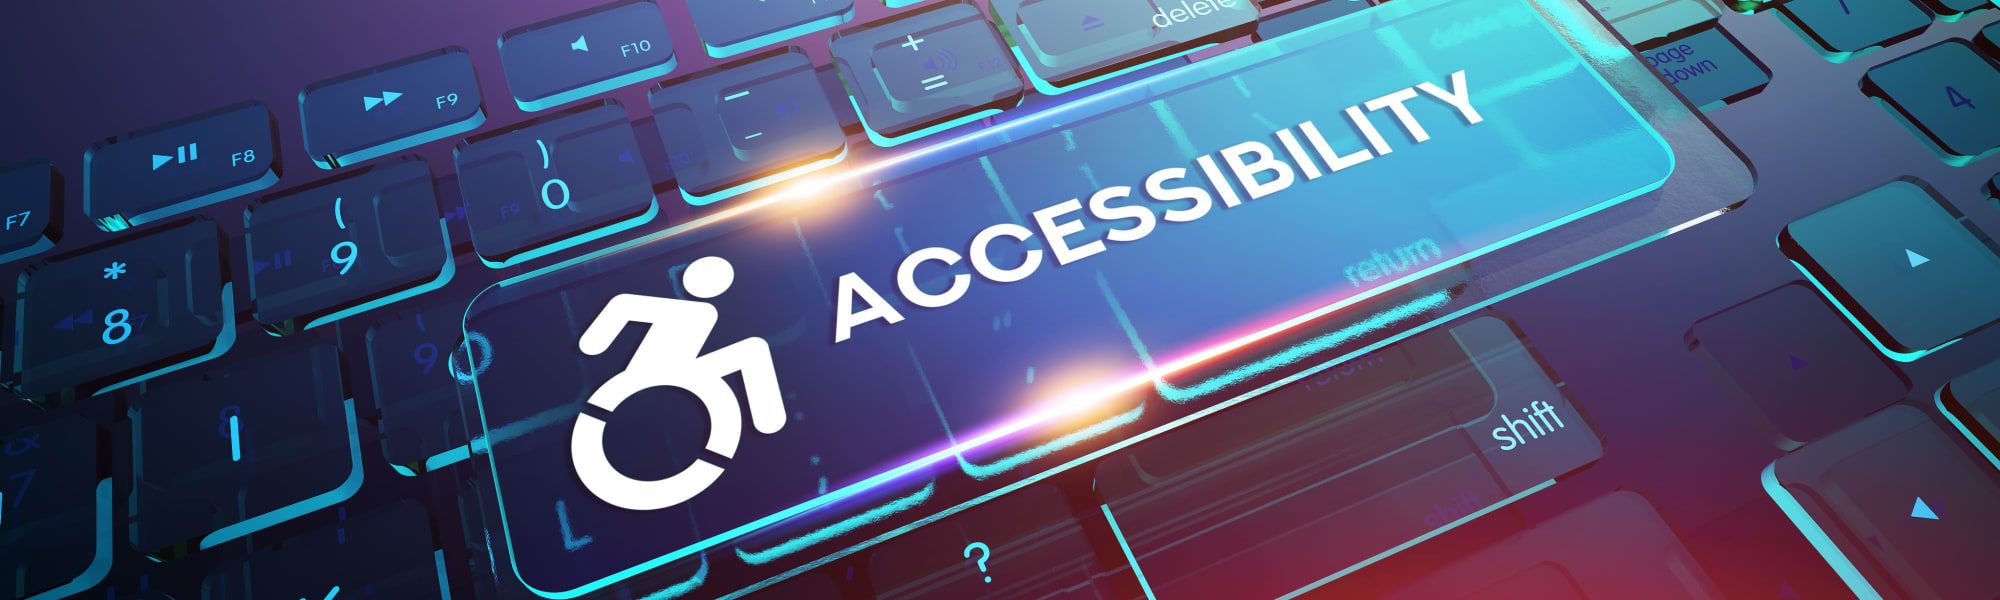 Accessibility policy for Olympus Katy Ranch in Katy, Texas